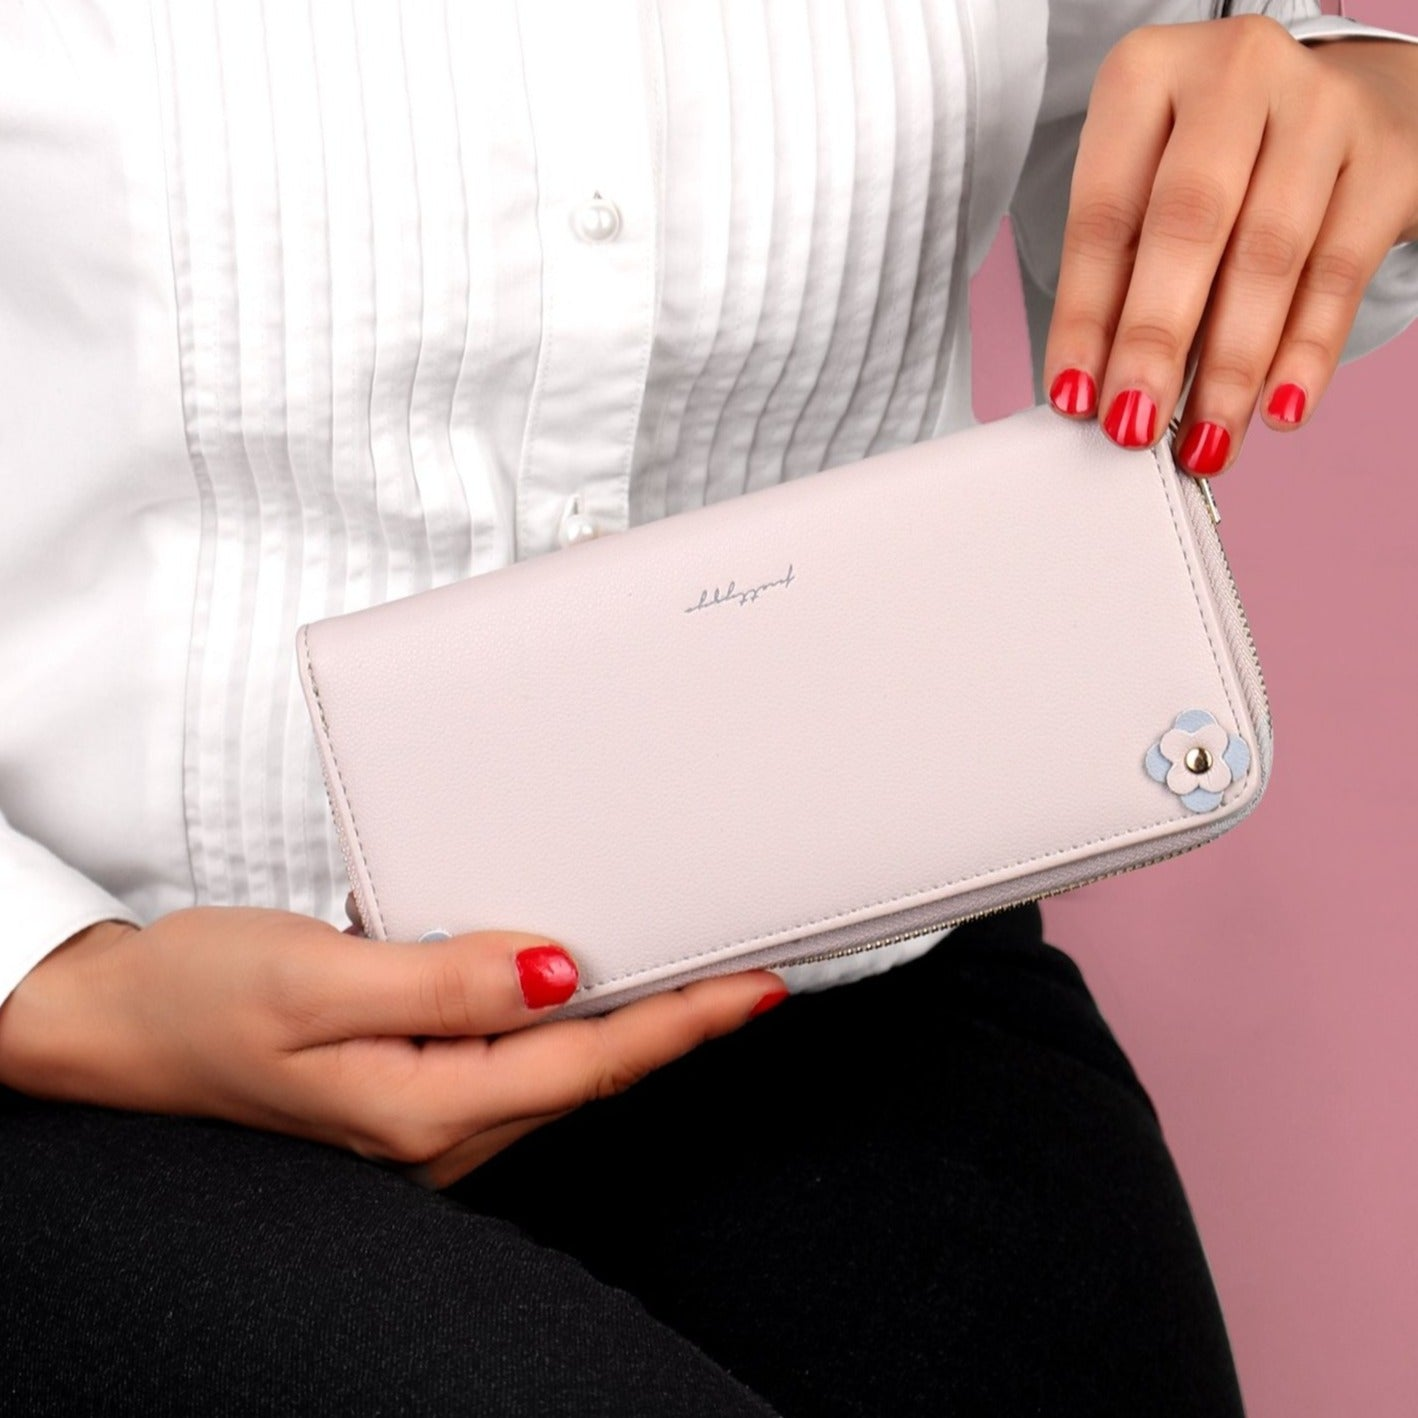 The Exquisite Signature Wallet in Grey Tone